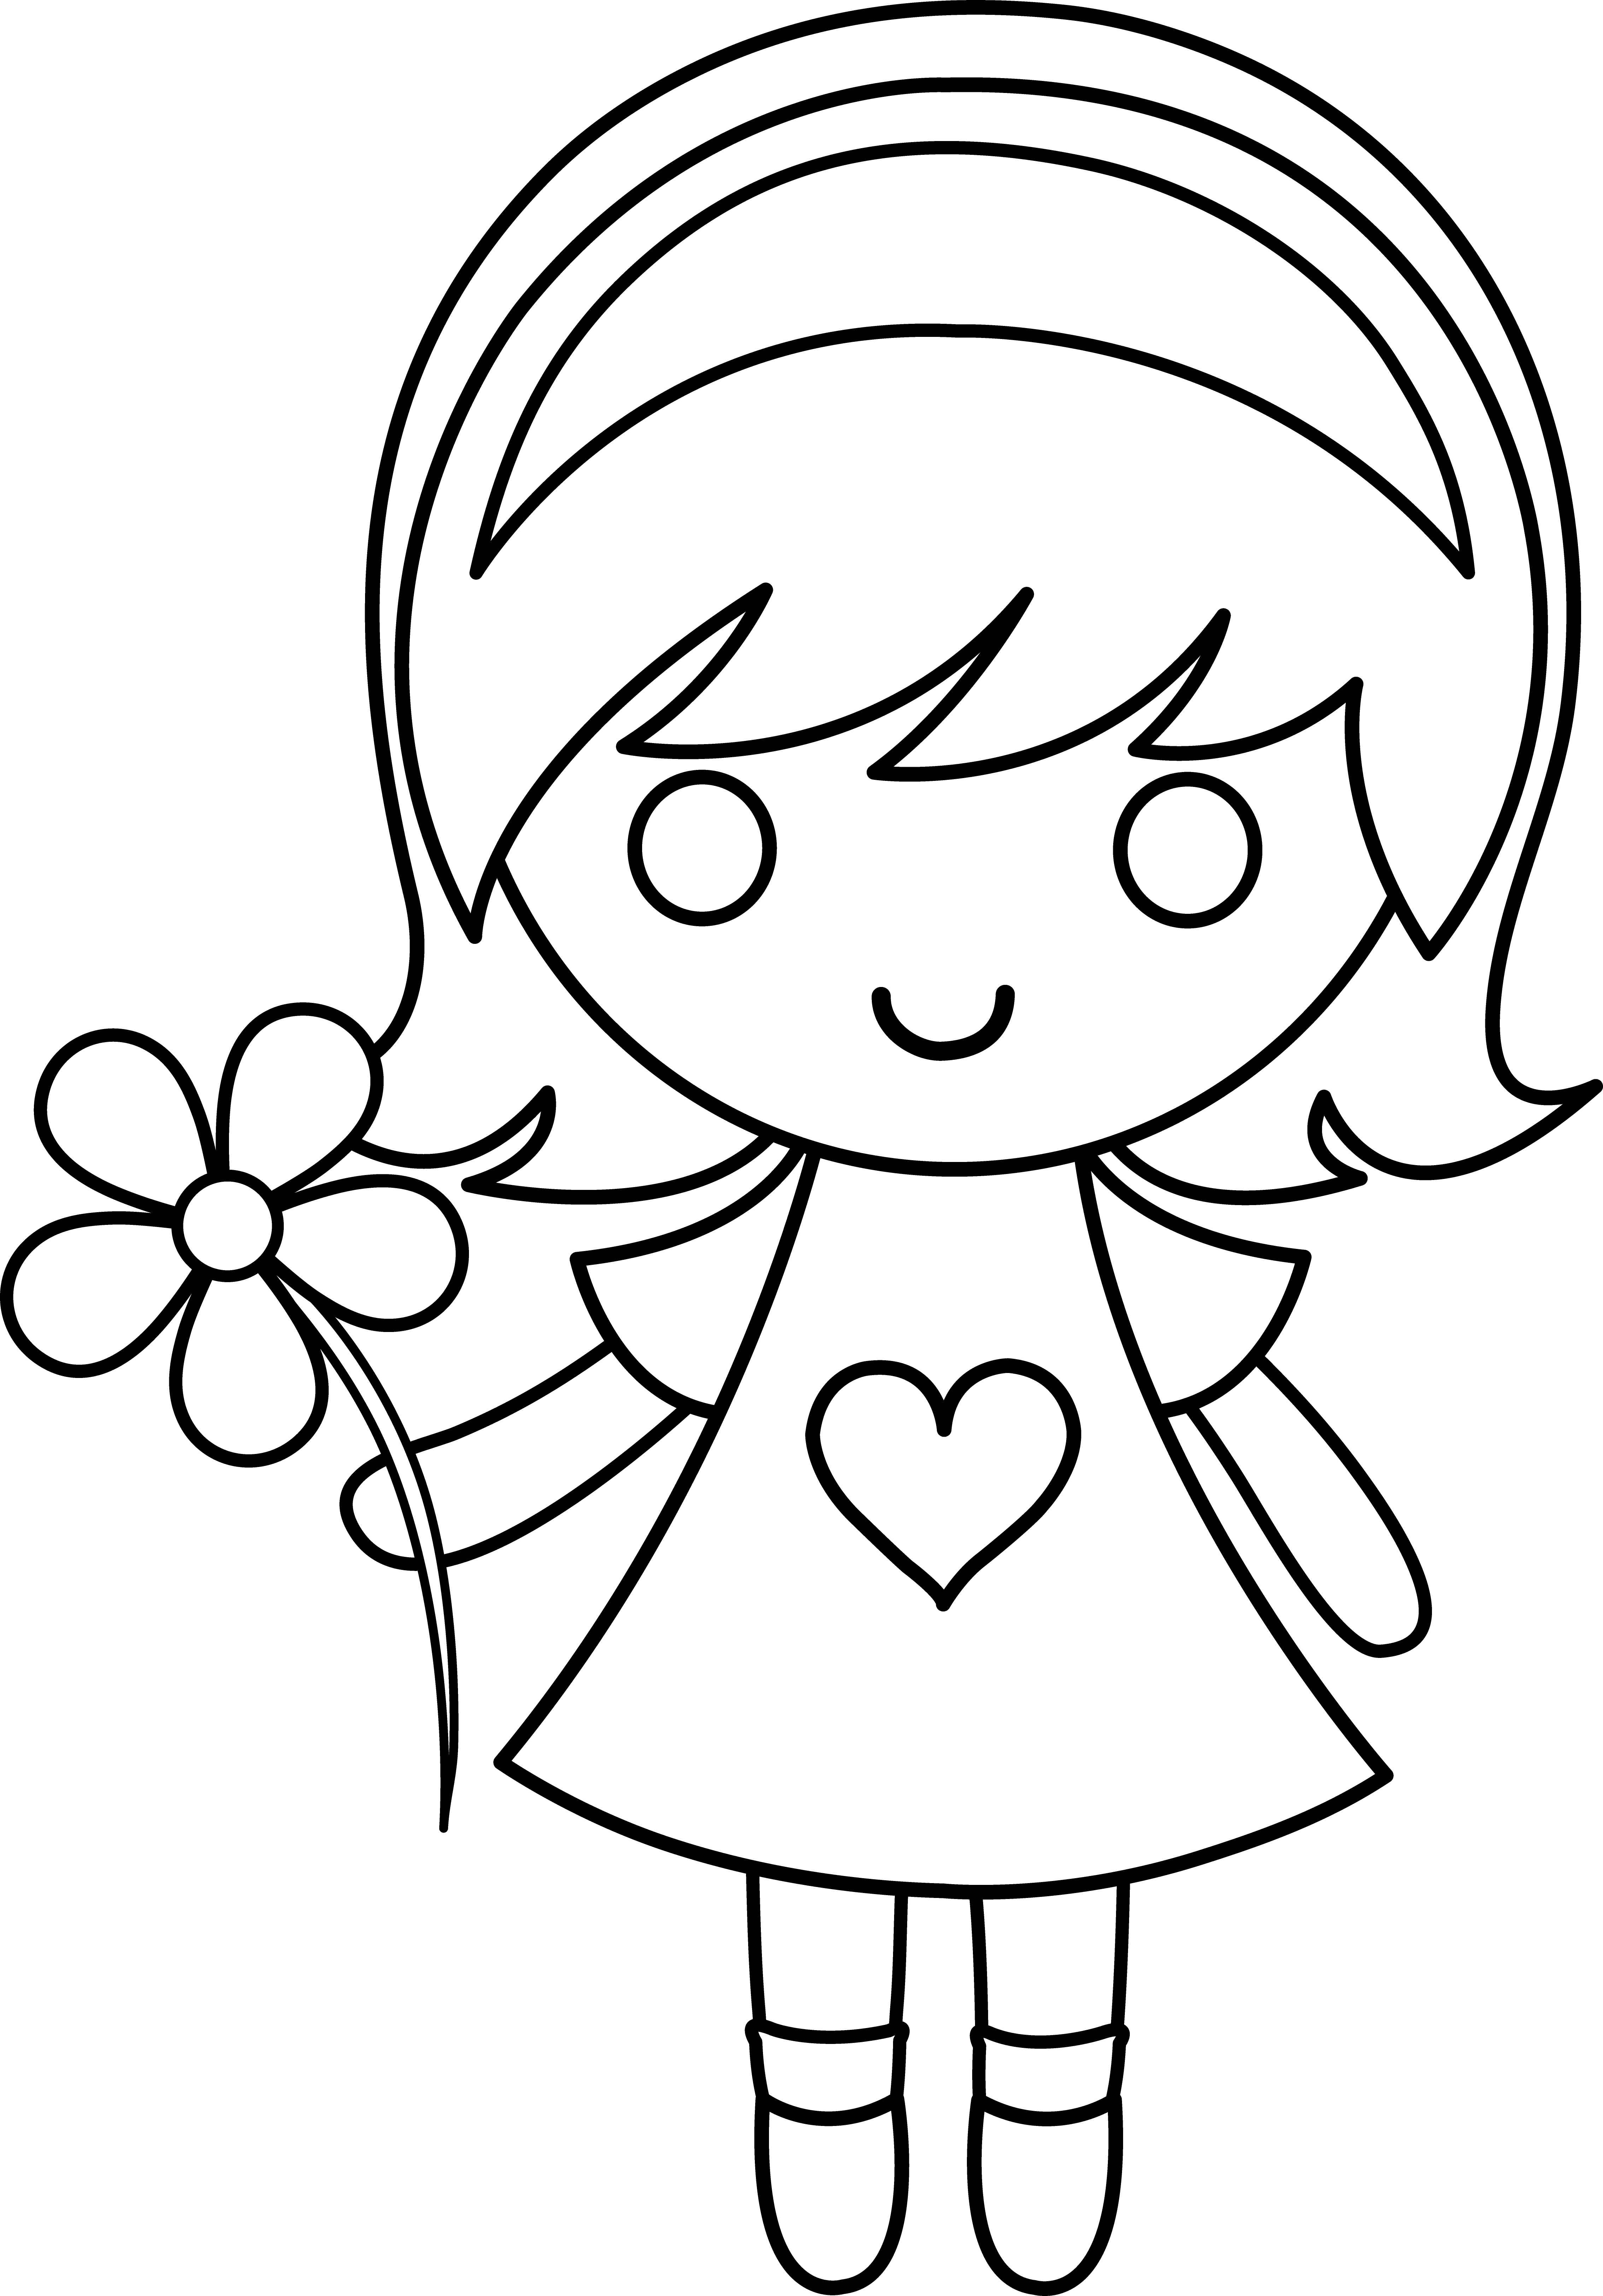 Daisy Girl Colorable Line Art Free Clip Art and coloring